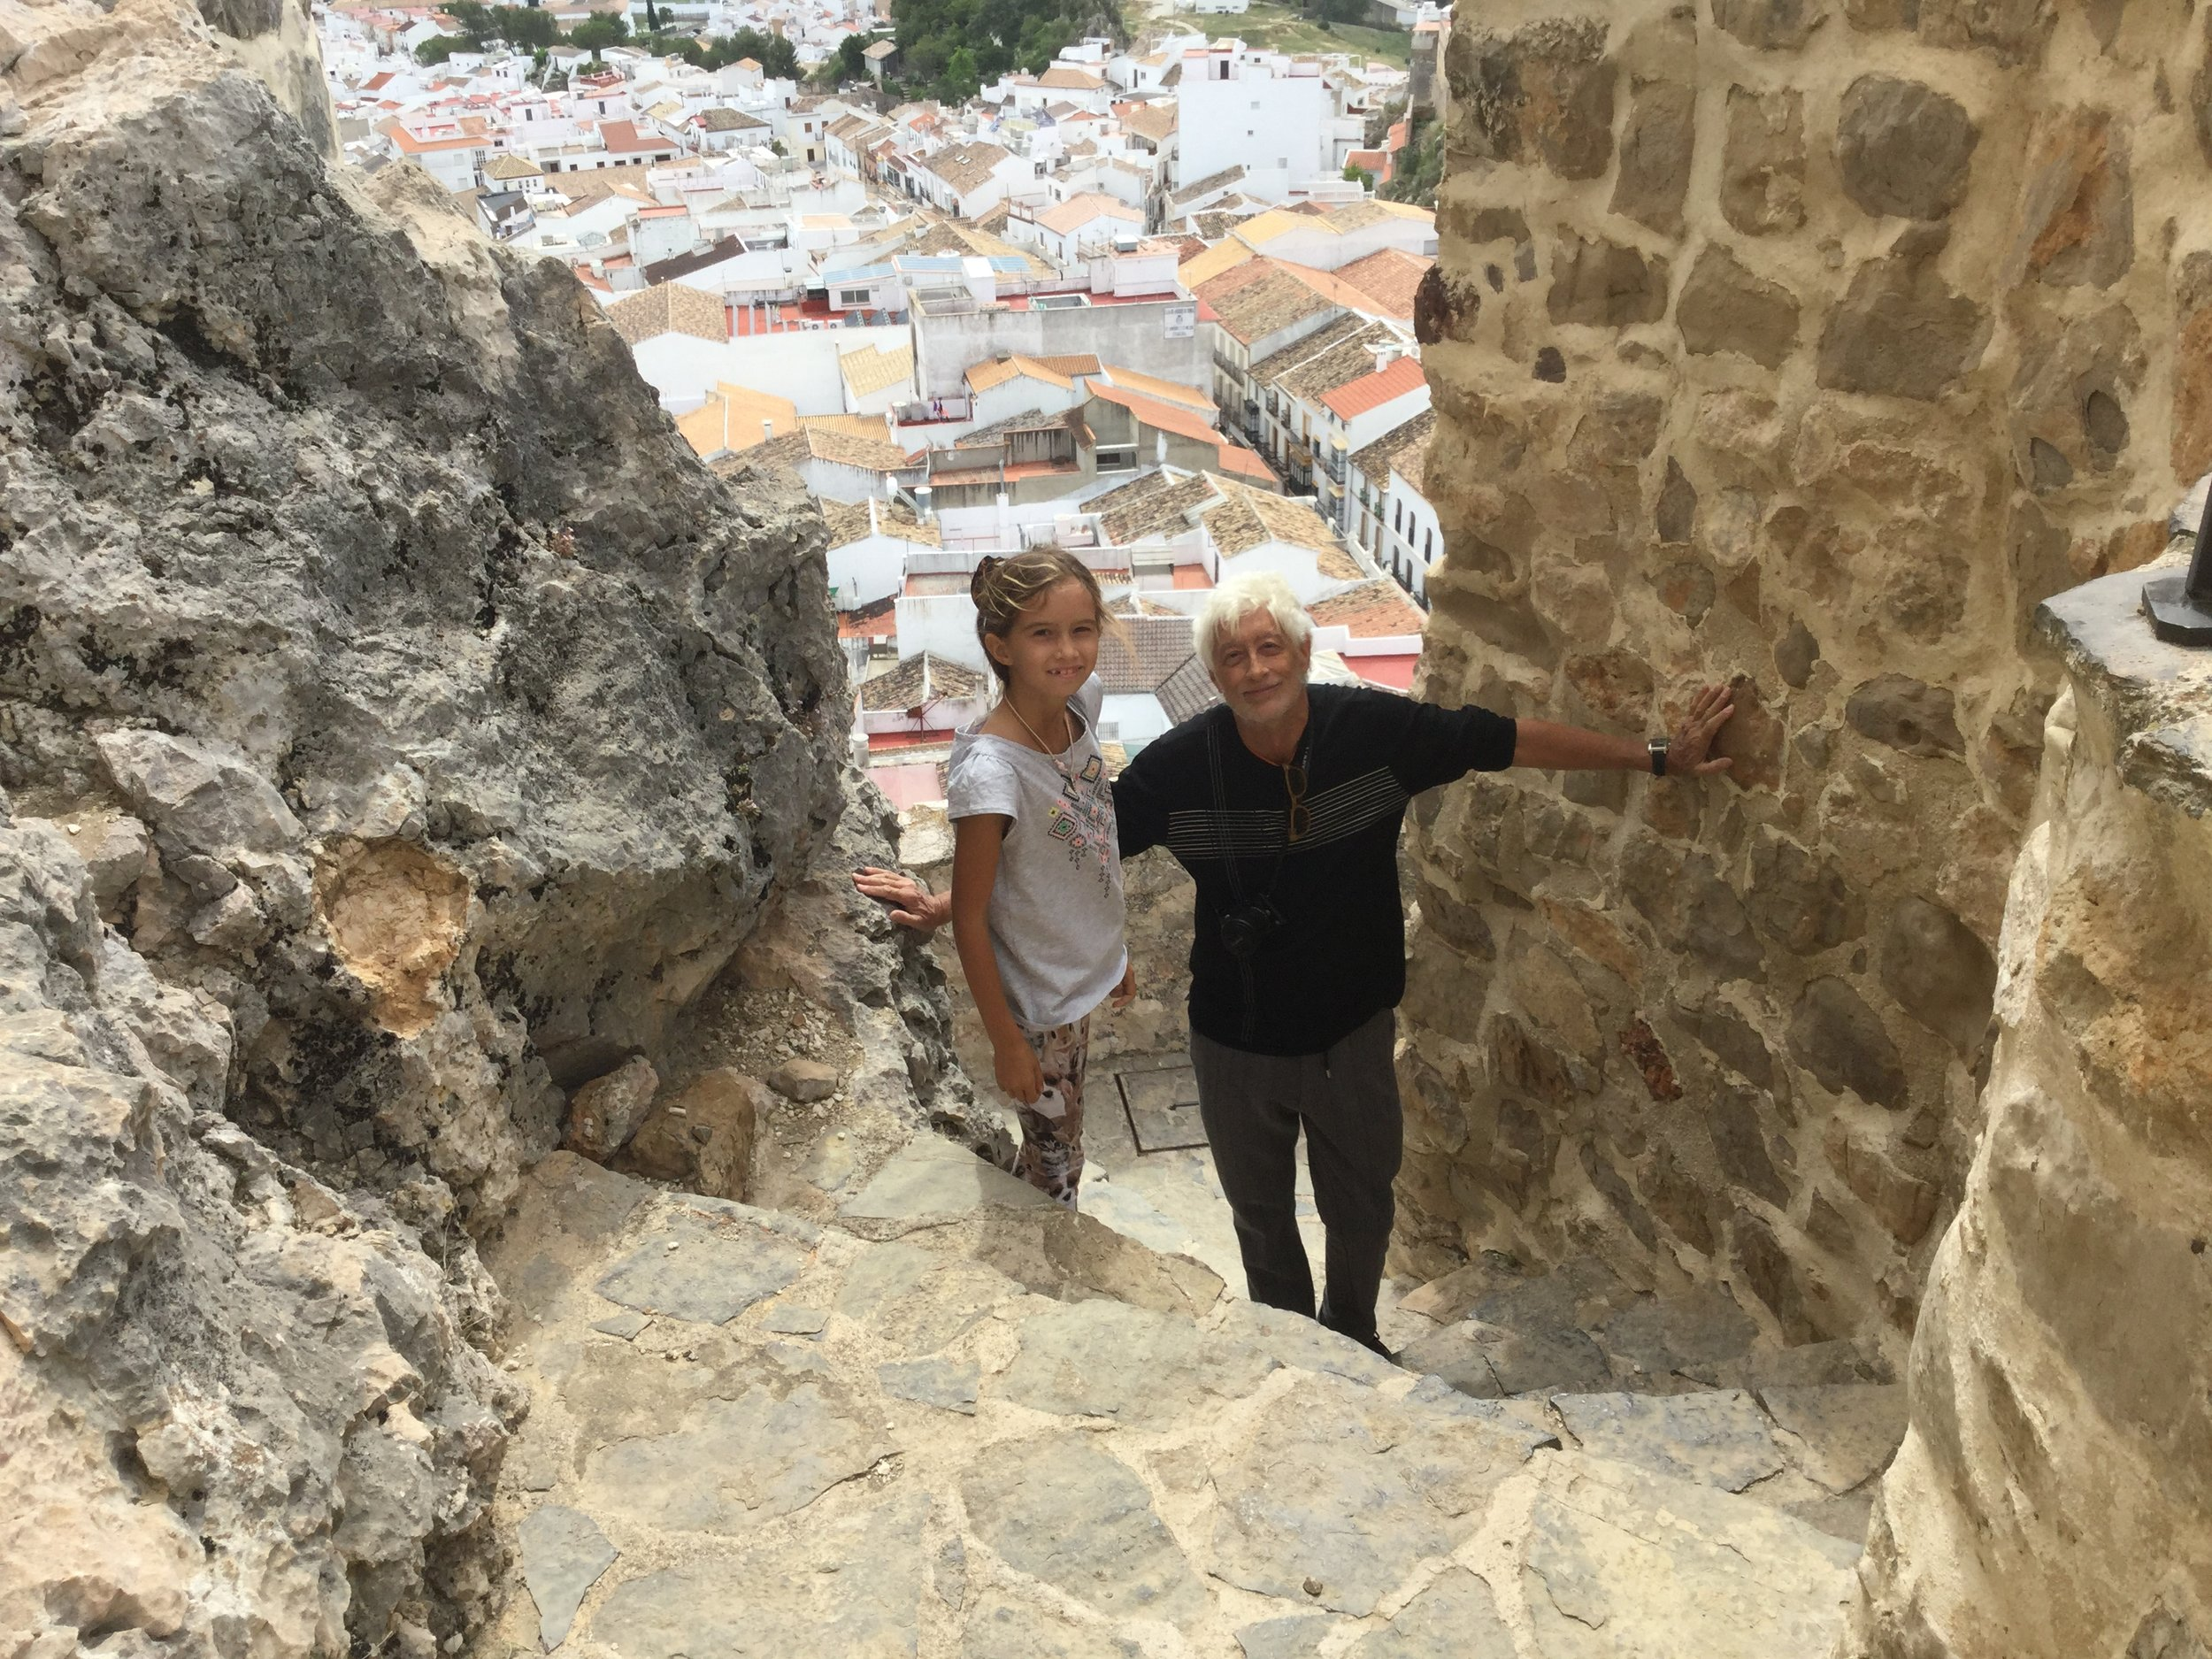 It's a healthy climb to get up to the castle. A great workout. The town below is so beautiful from this angle as well.